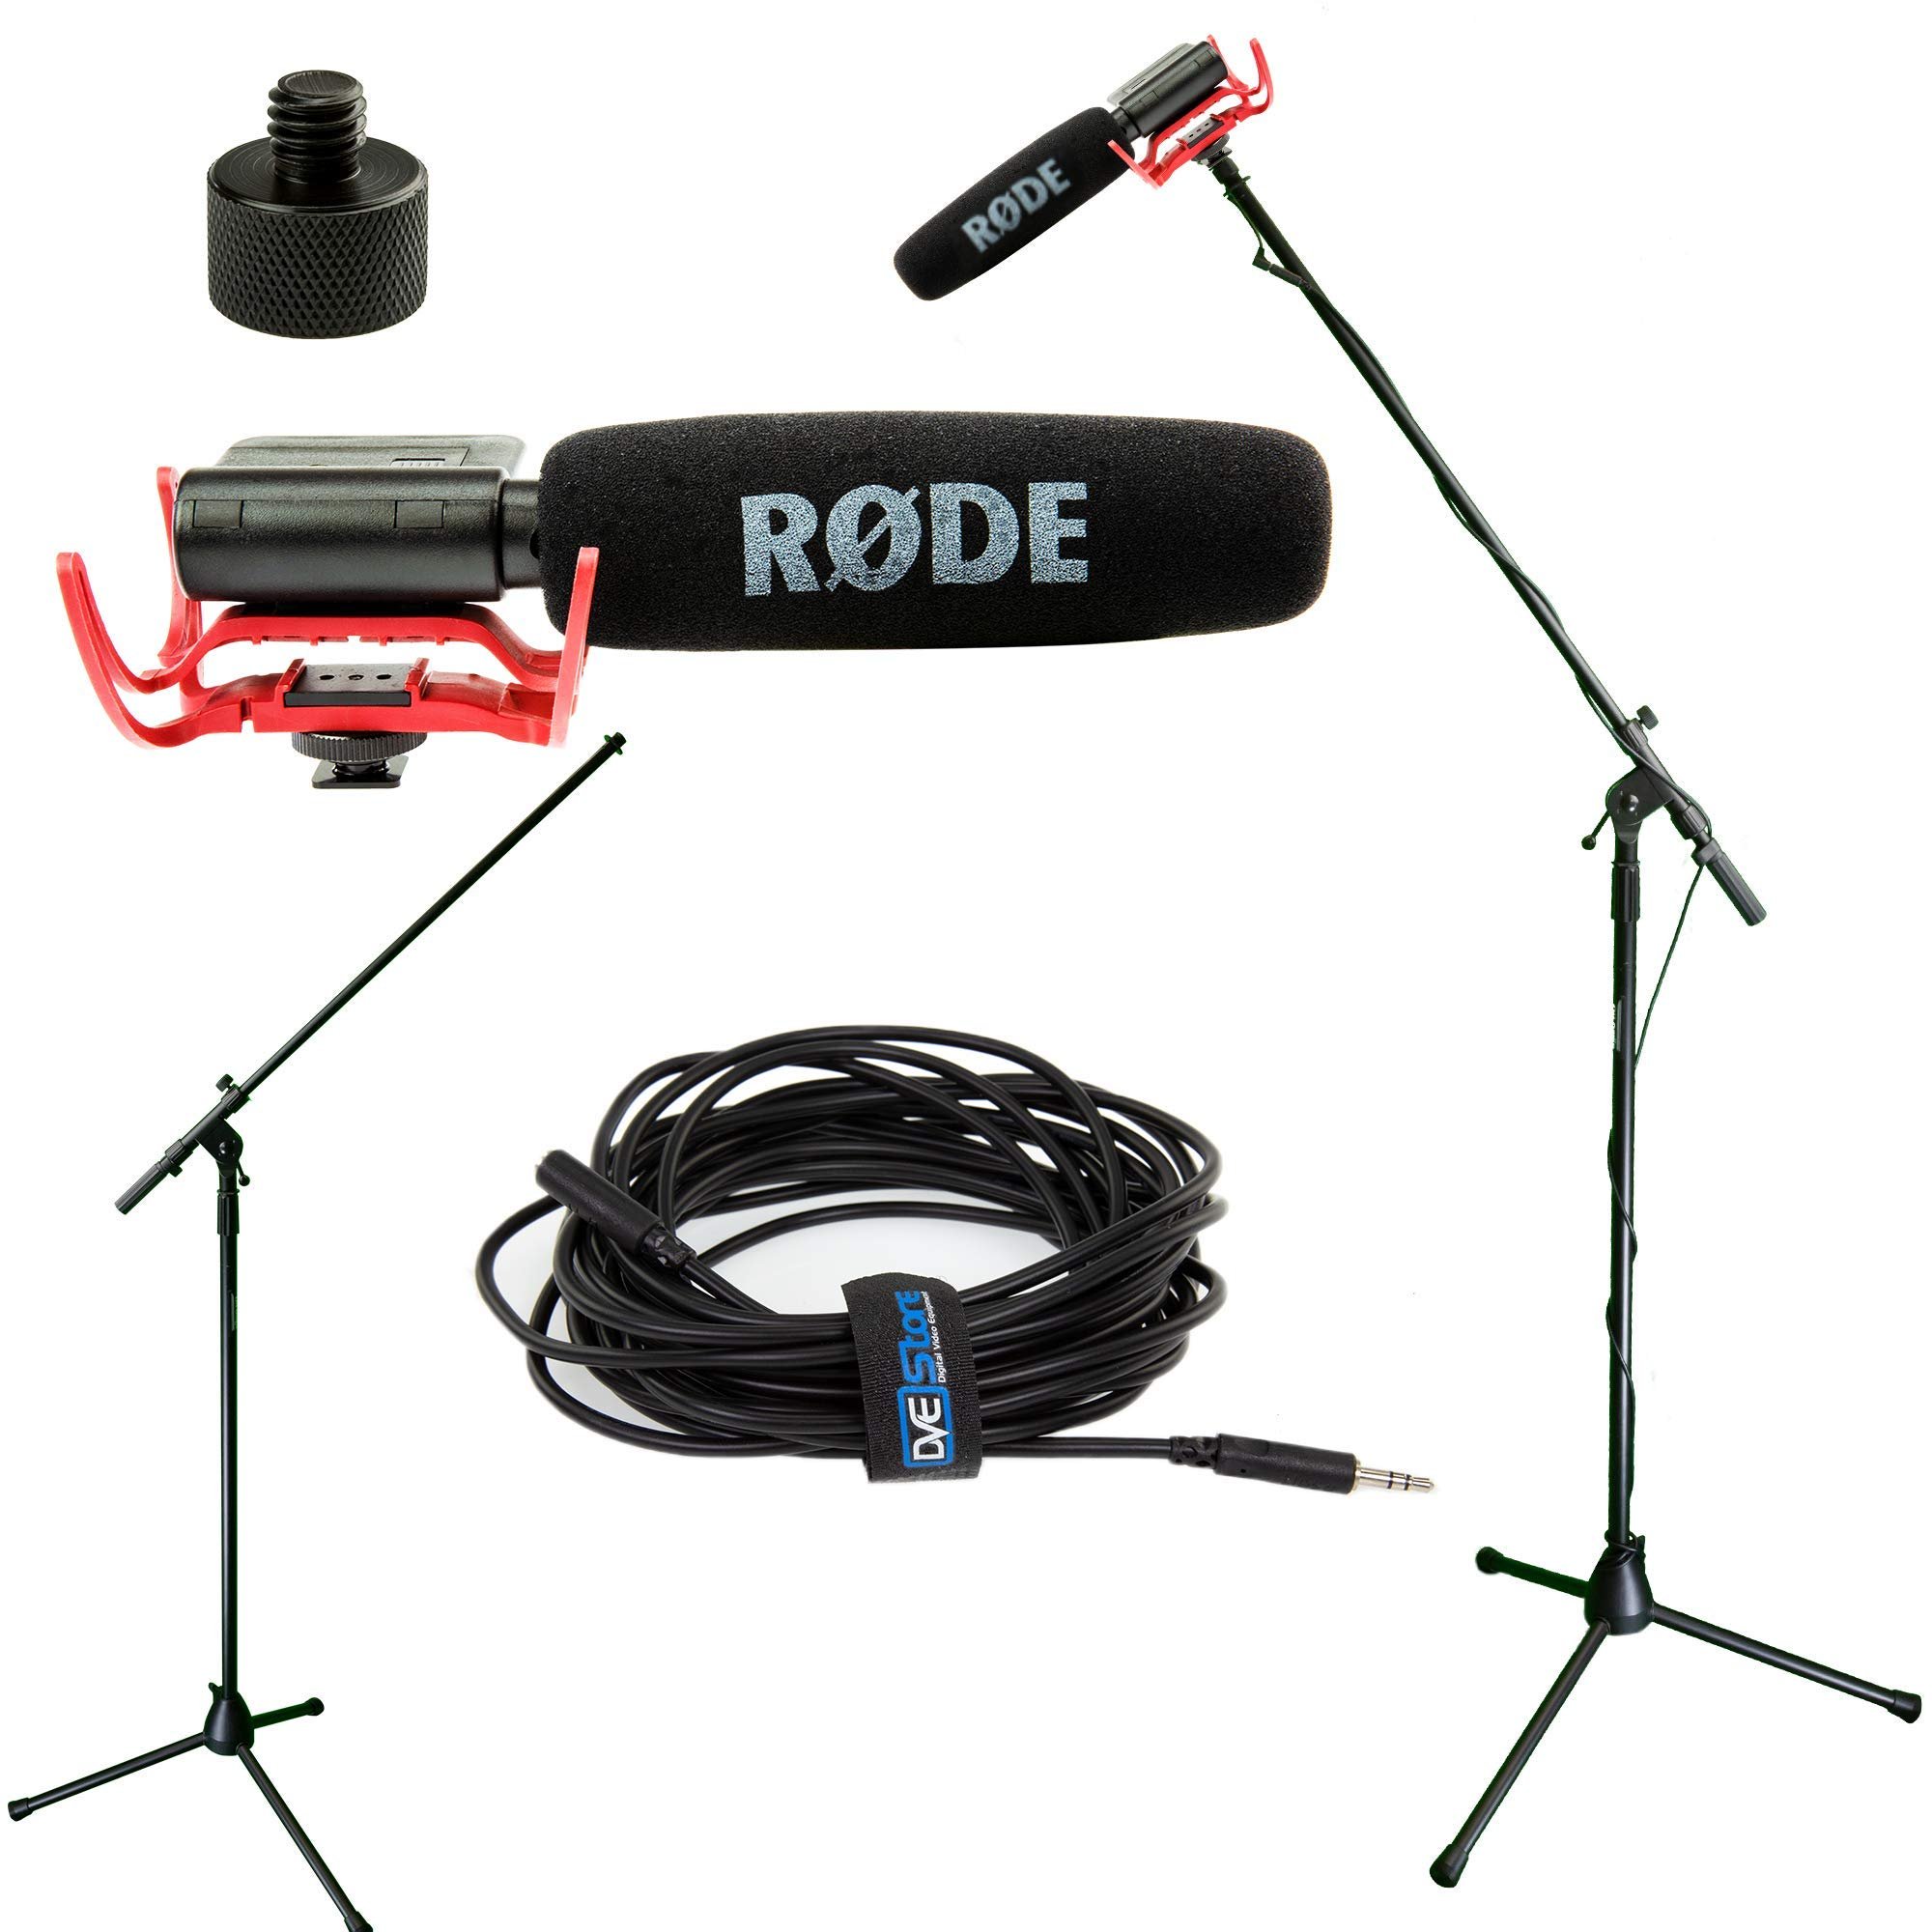 RODE VideoMic Studio Boom Kit - VM, Boom Stand, Adapter, 25' Cable by Rode